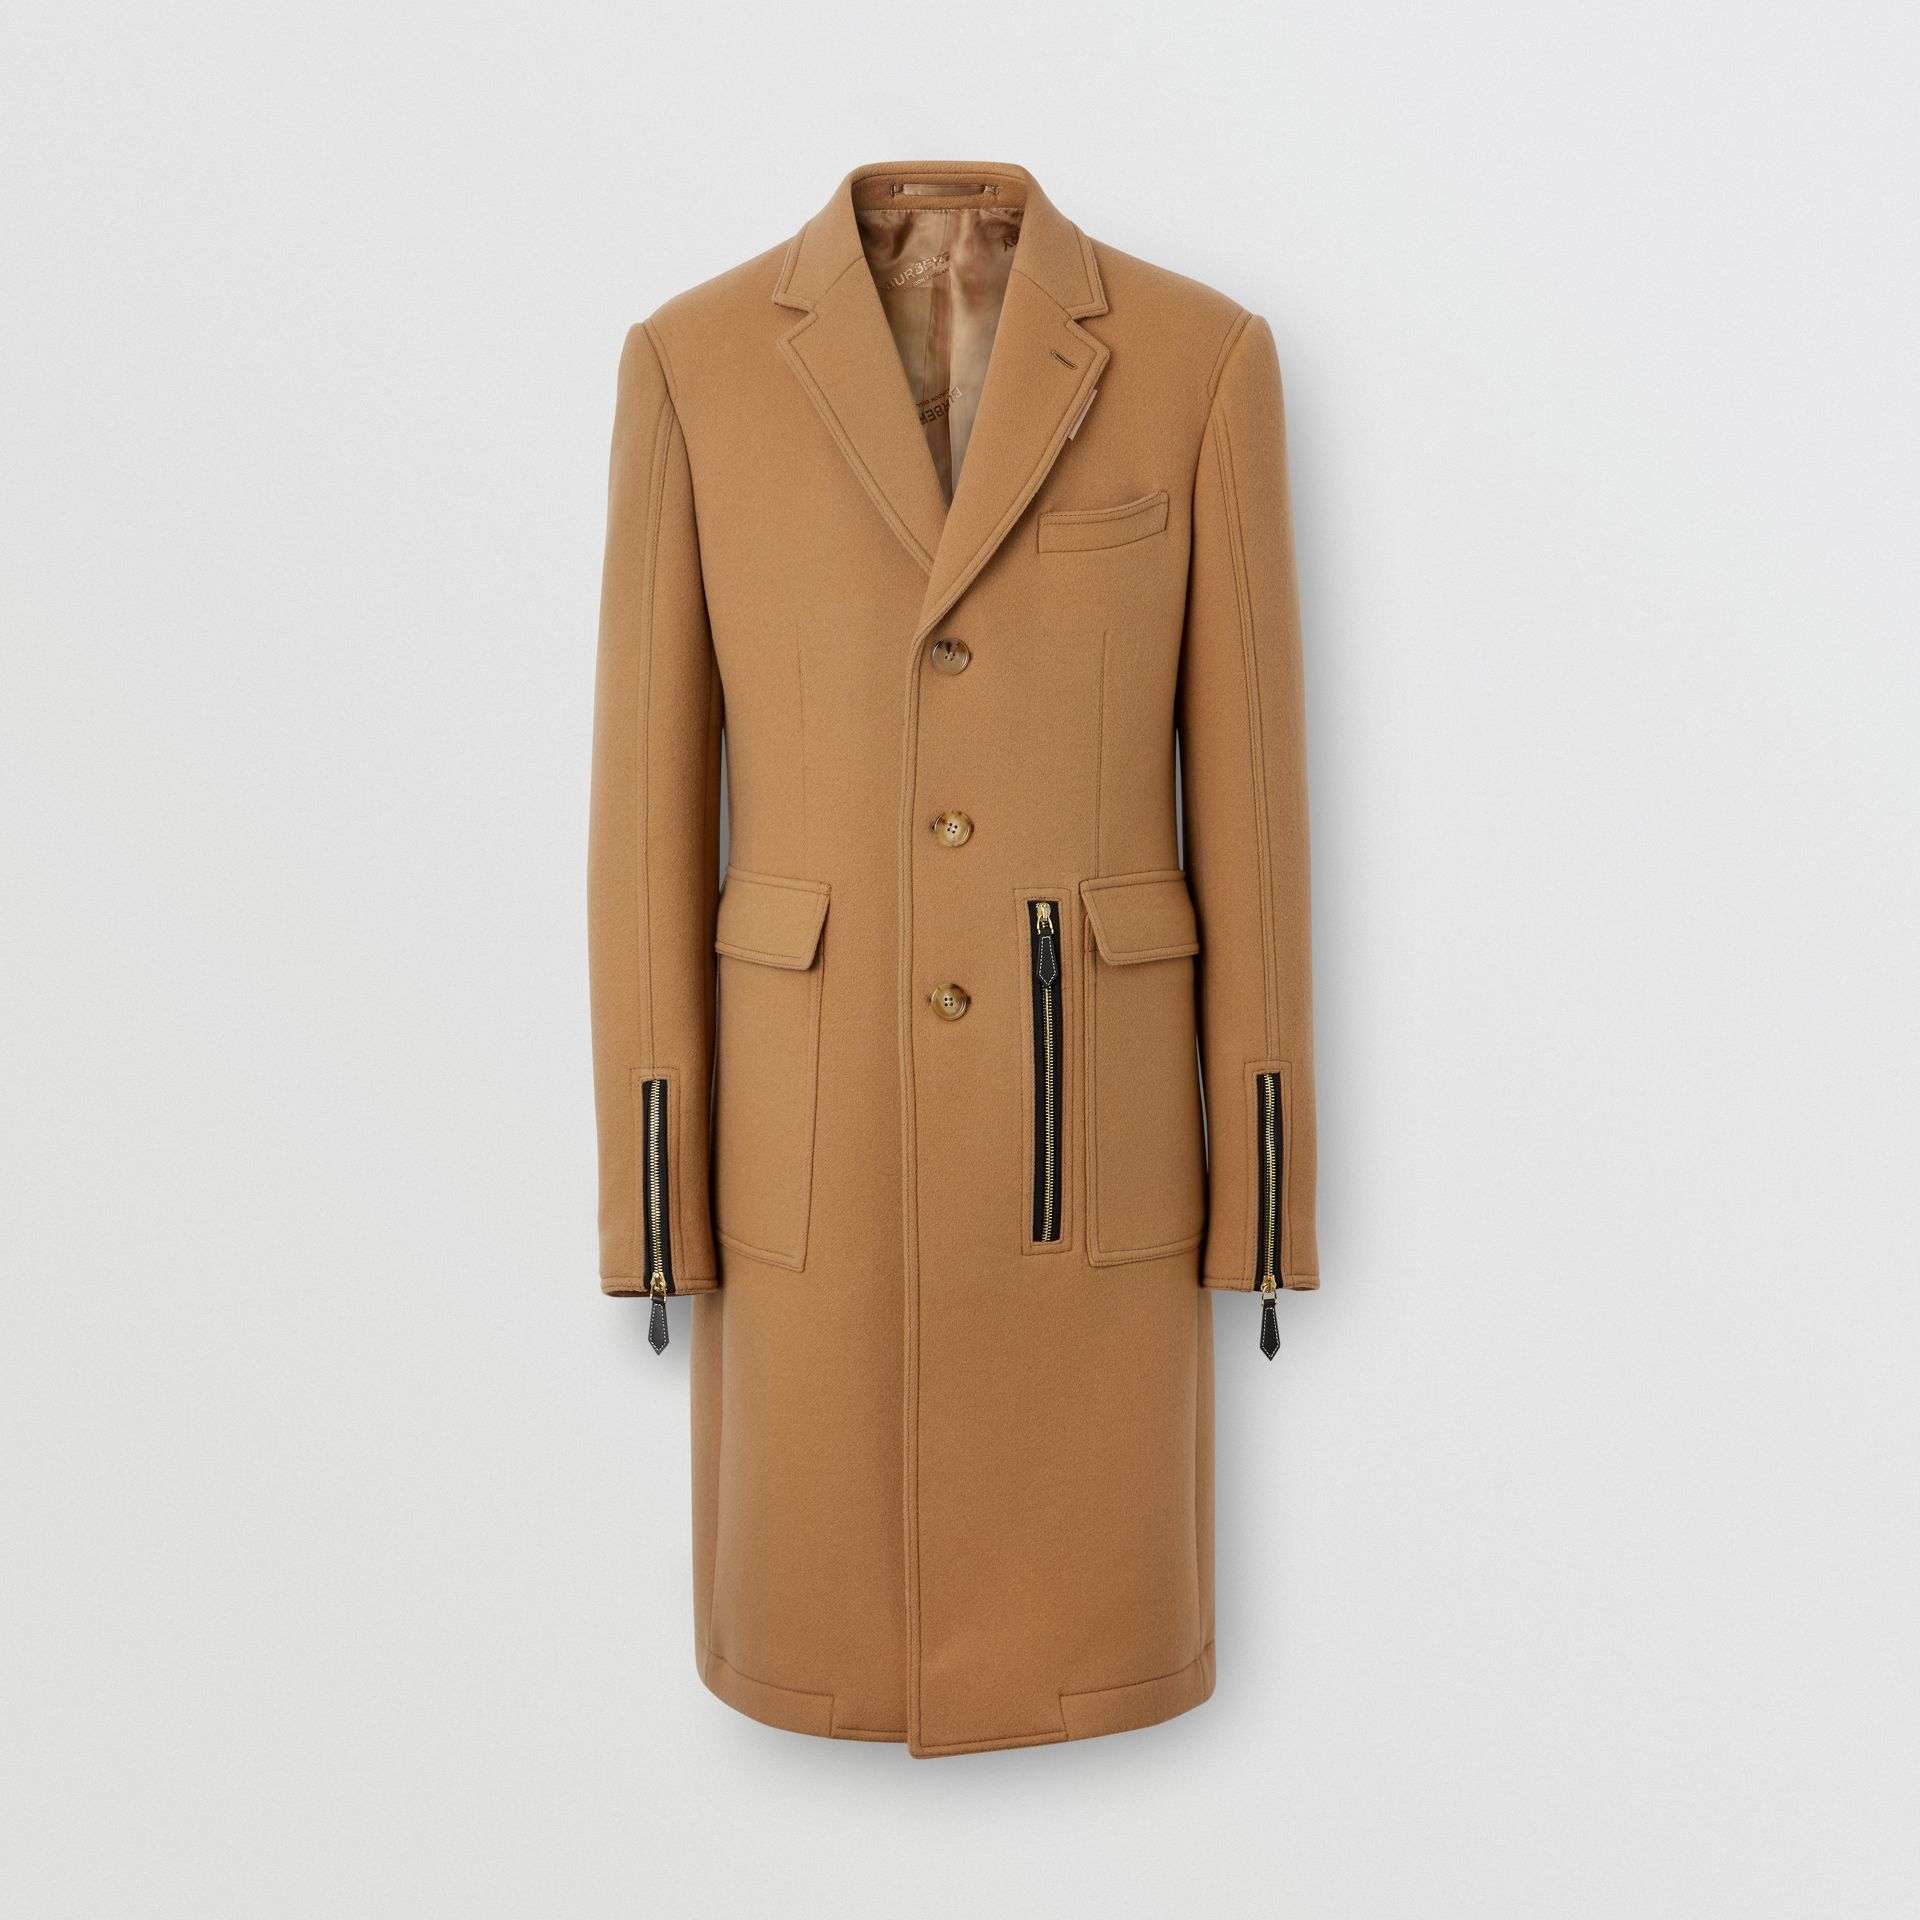 Zip Detail Wool Tailored Coat in Warm Camel - Men | Burberry Singapore - gallery image 3